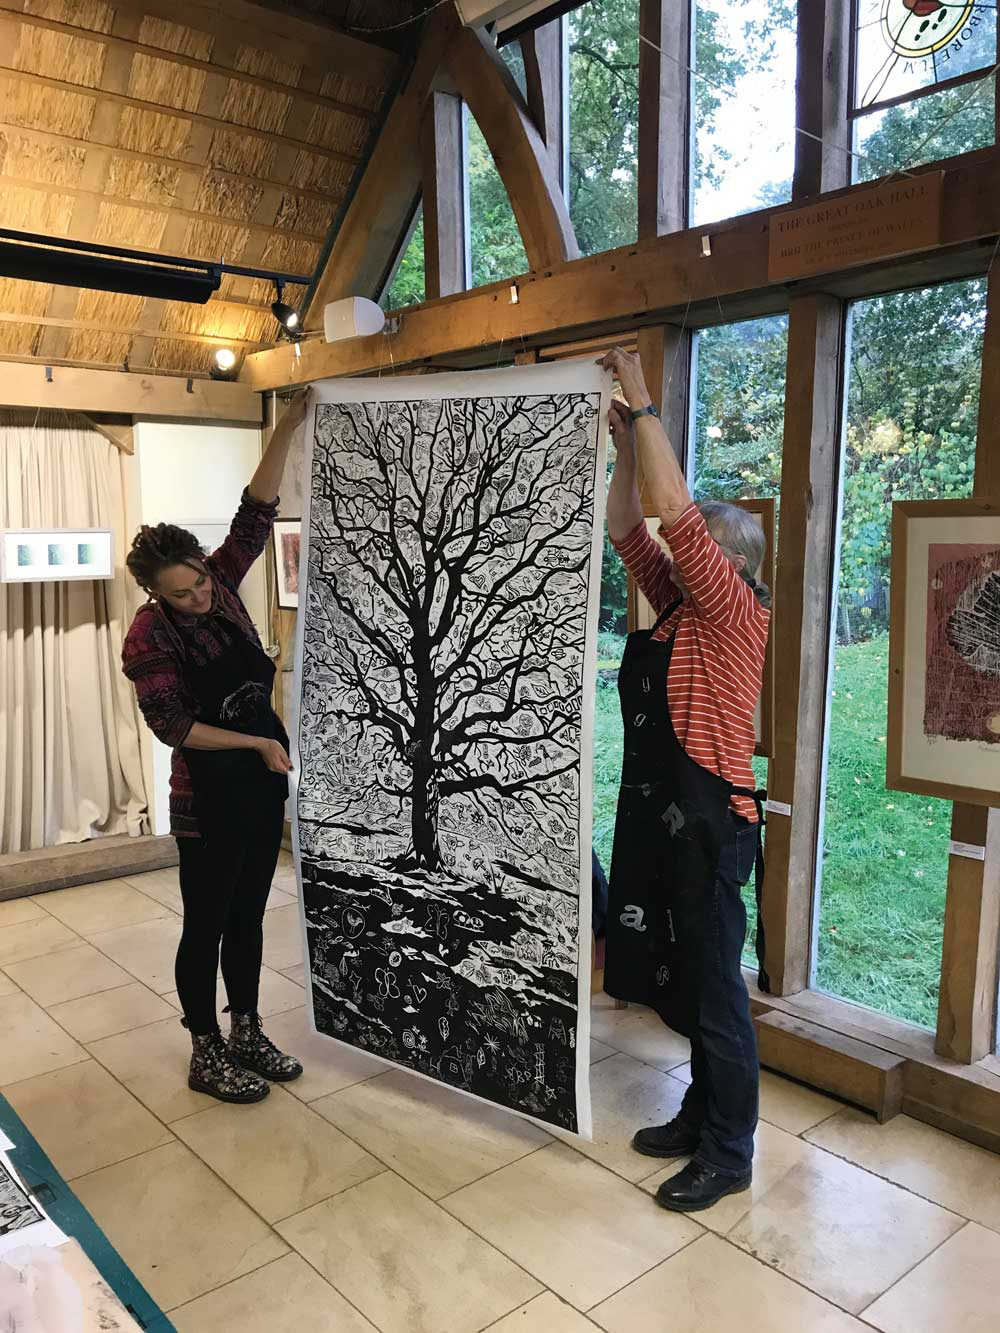 Lino print of a winter oak tree being held up